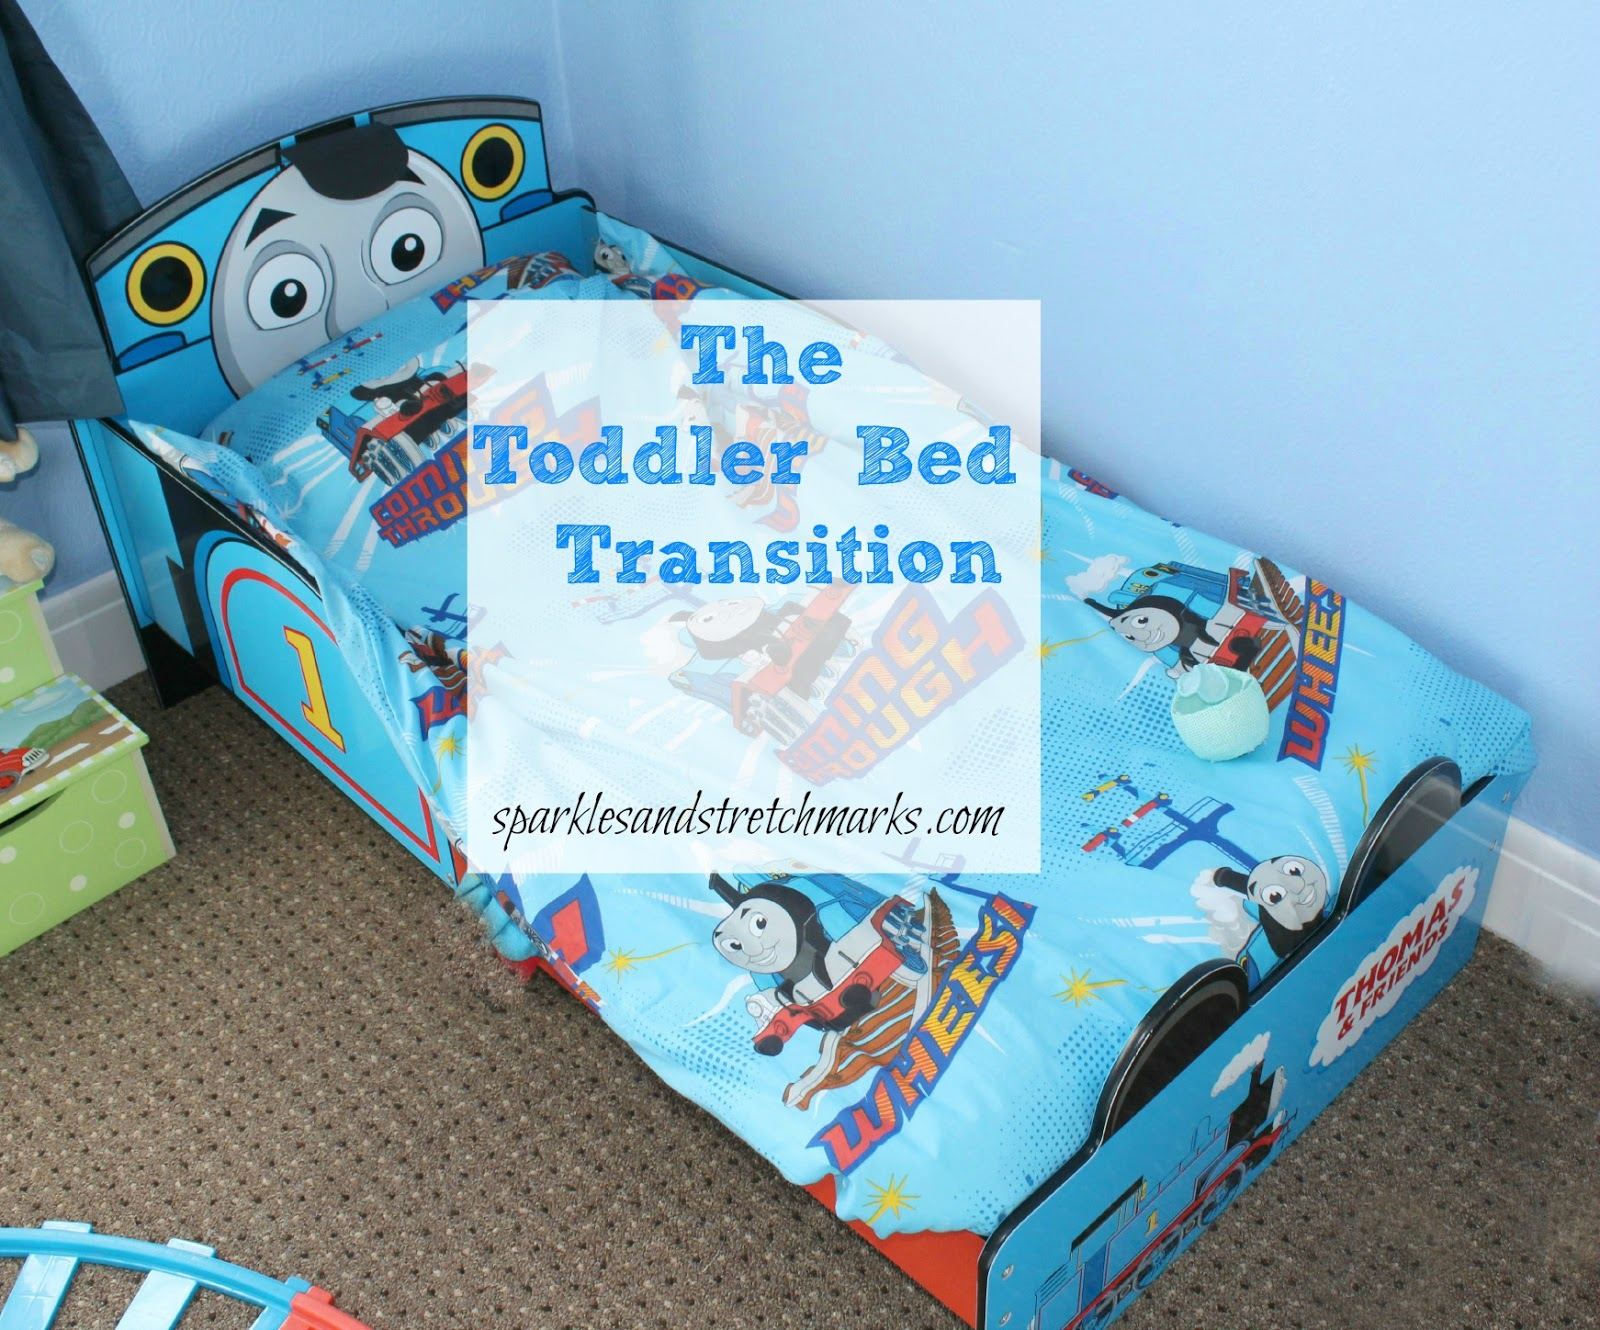 The Toddler Bed Transition Your Chance To WIN A Thomas